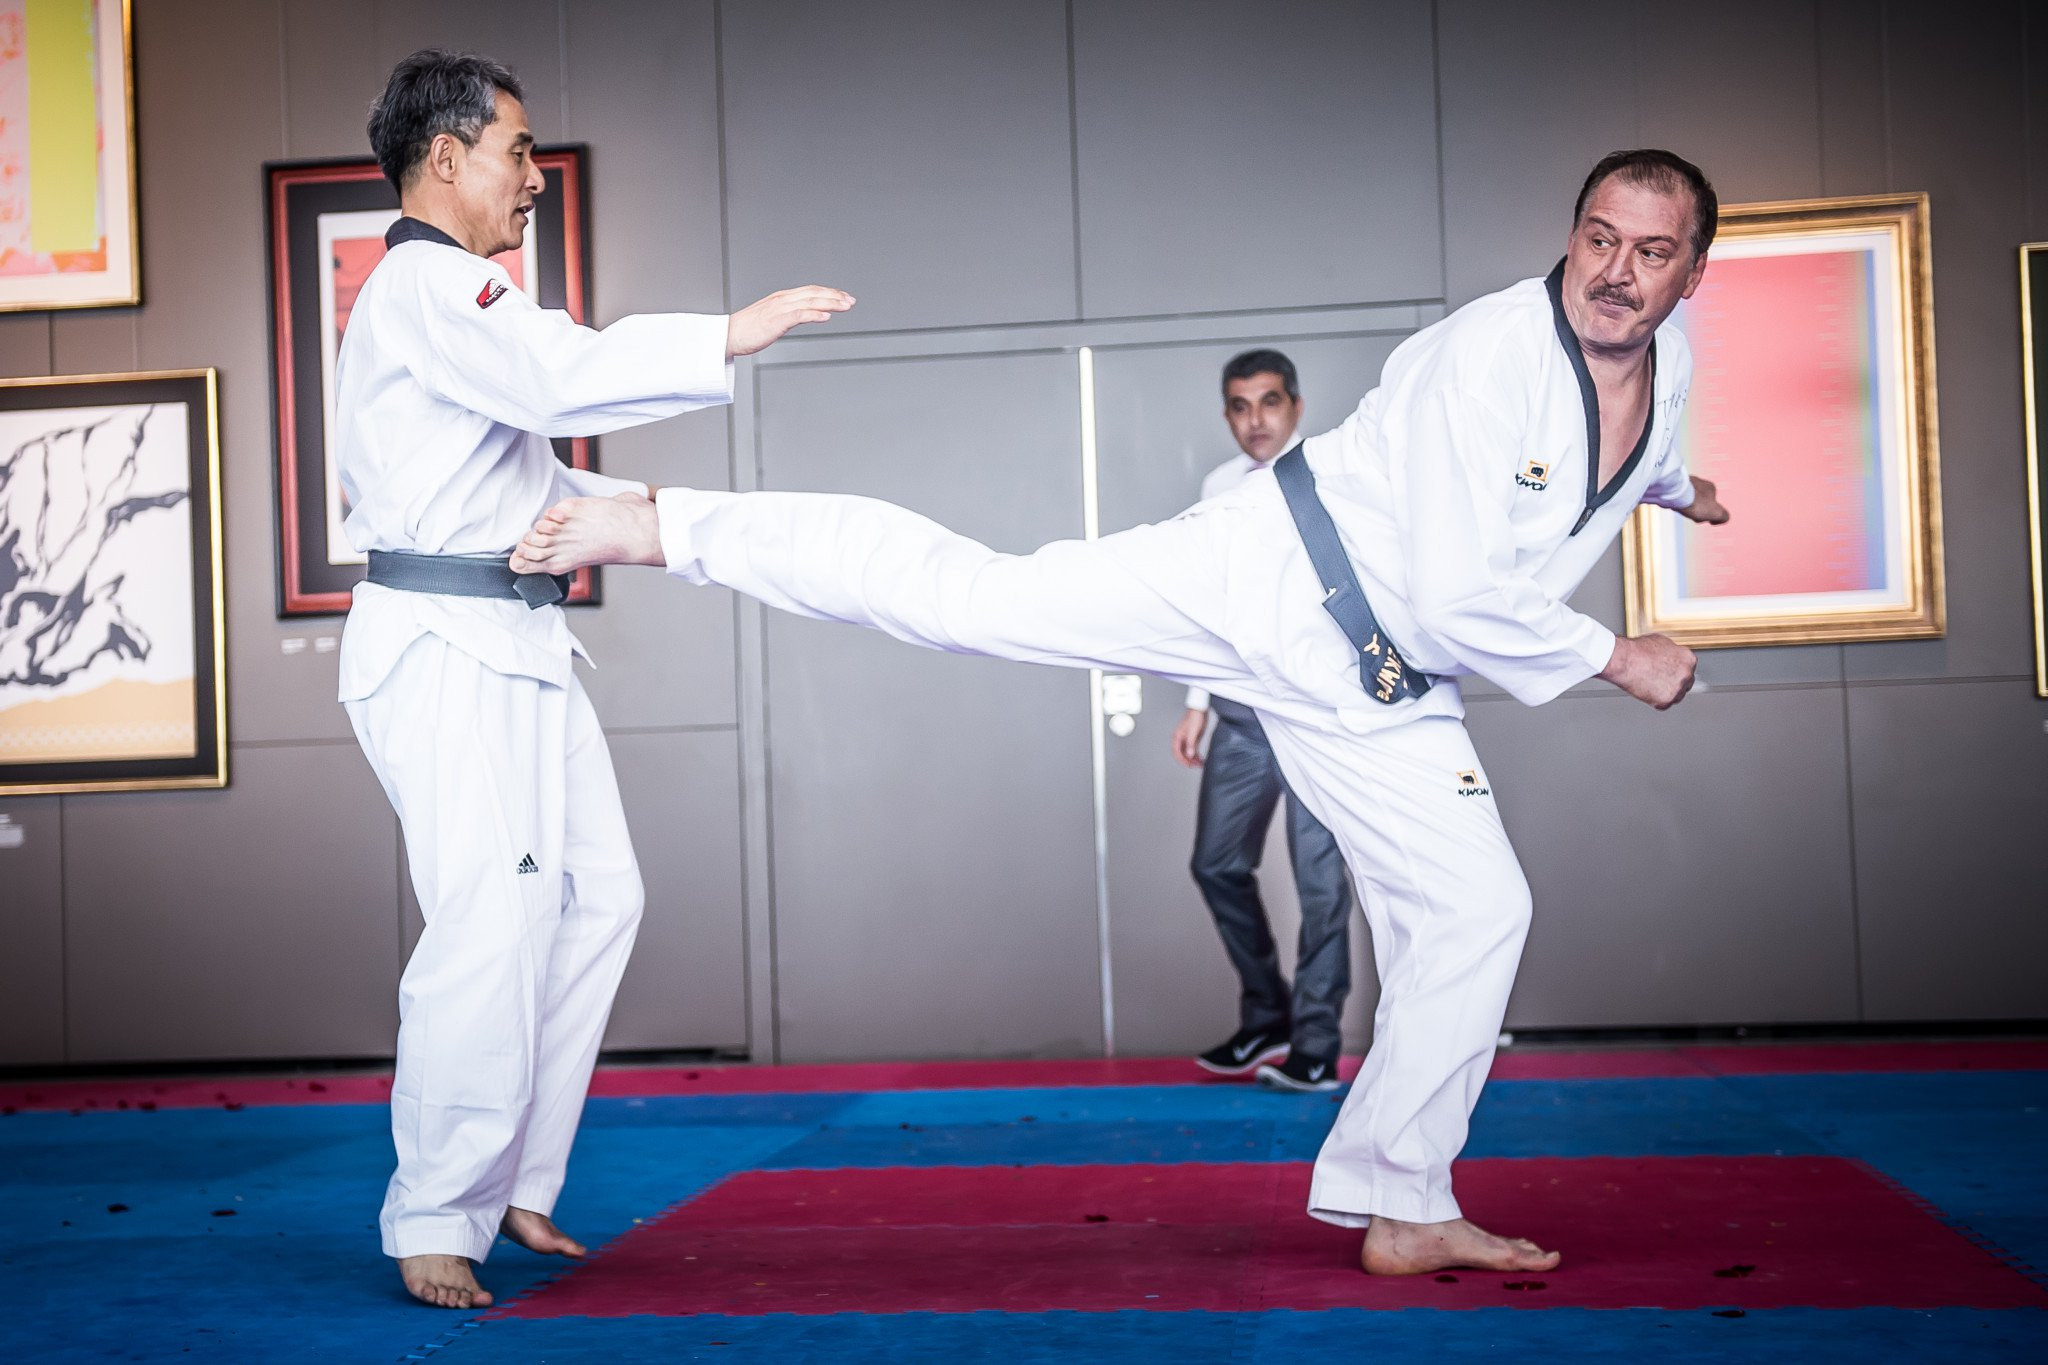 World Taekwondo Europe vice-president takes part in re-match of historic encounter with South Korean rival